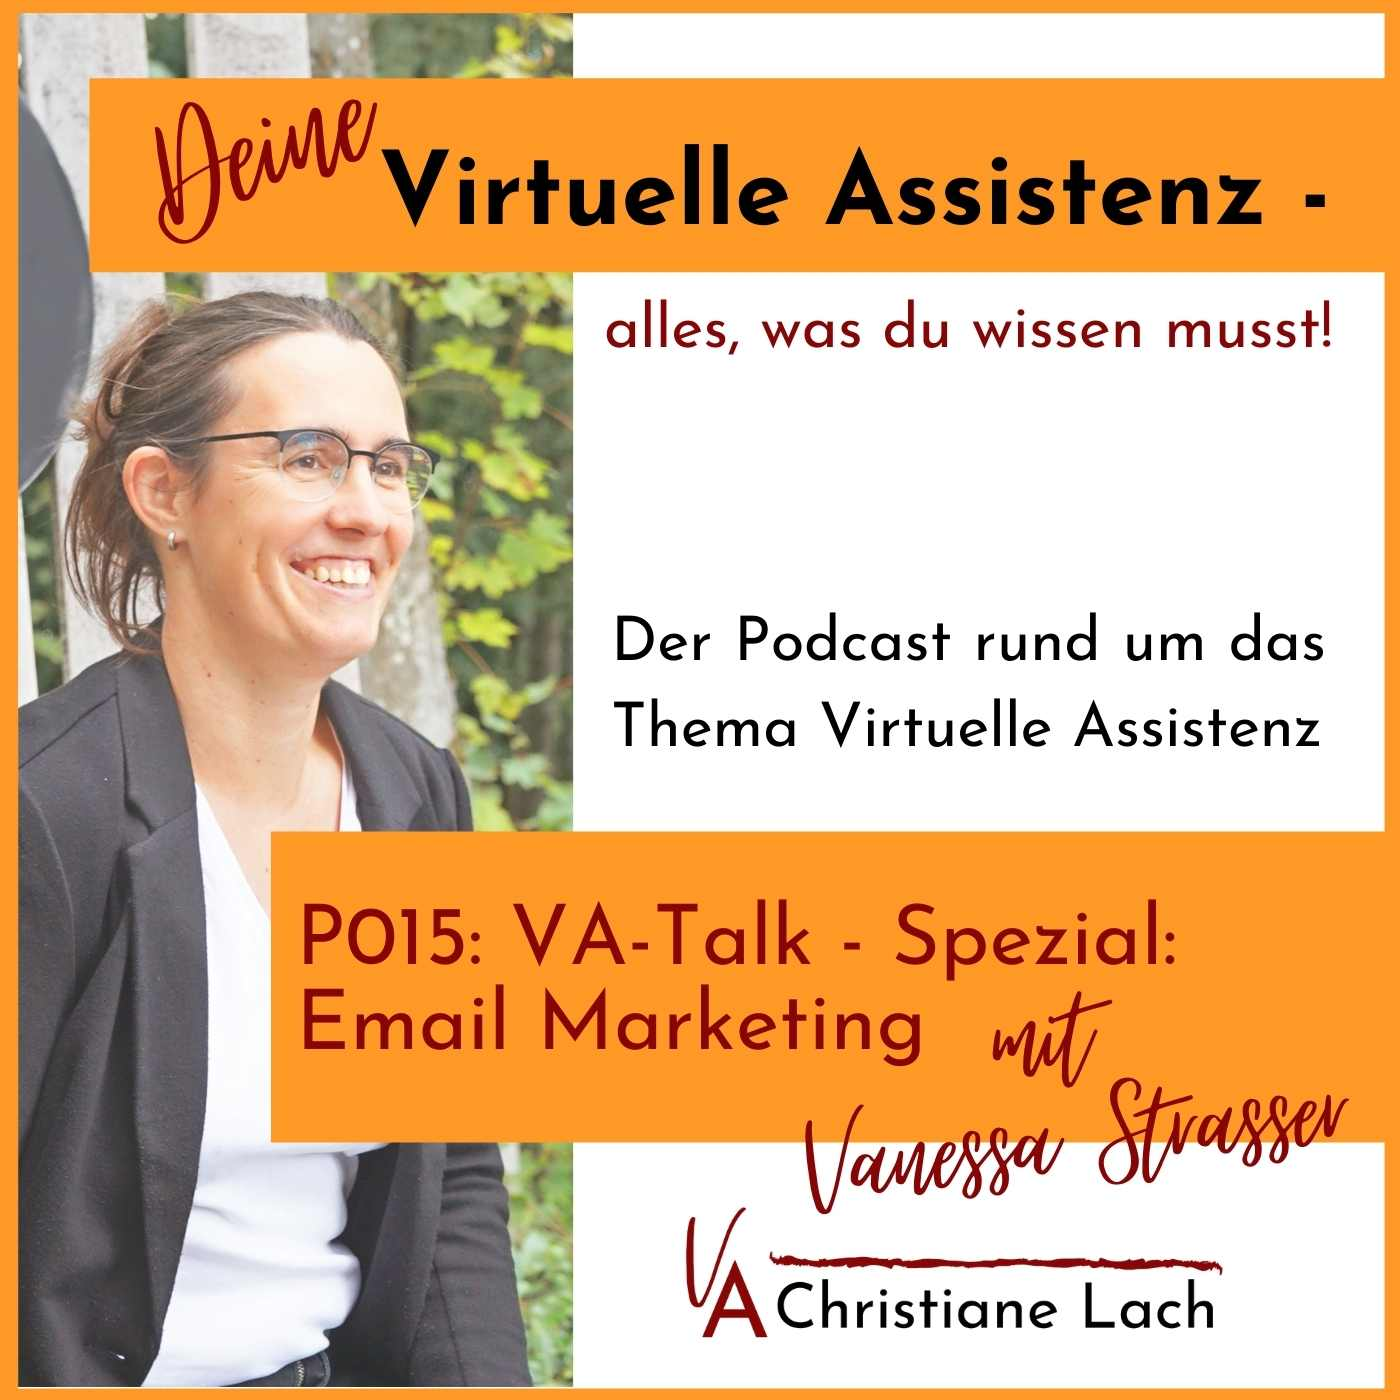 P015: VA-Talk – Spezial: Email Marketing